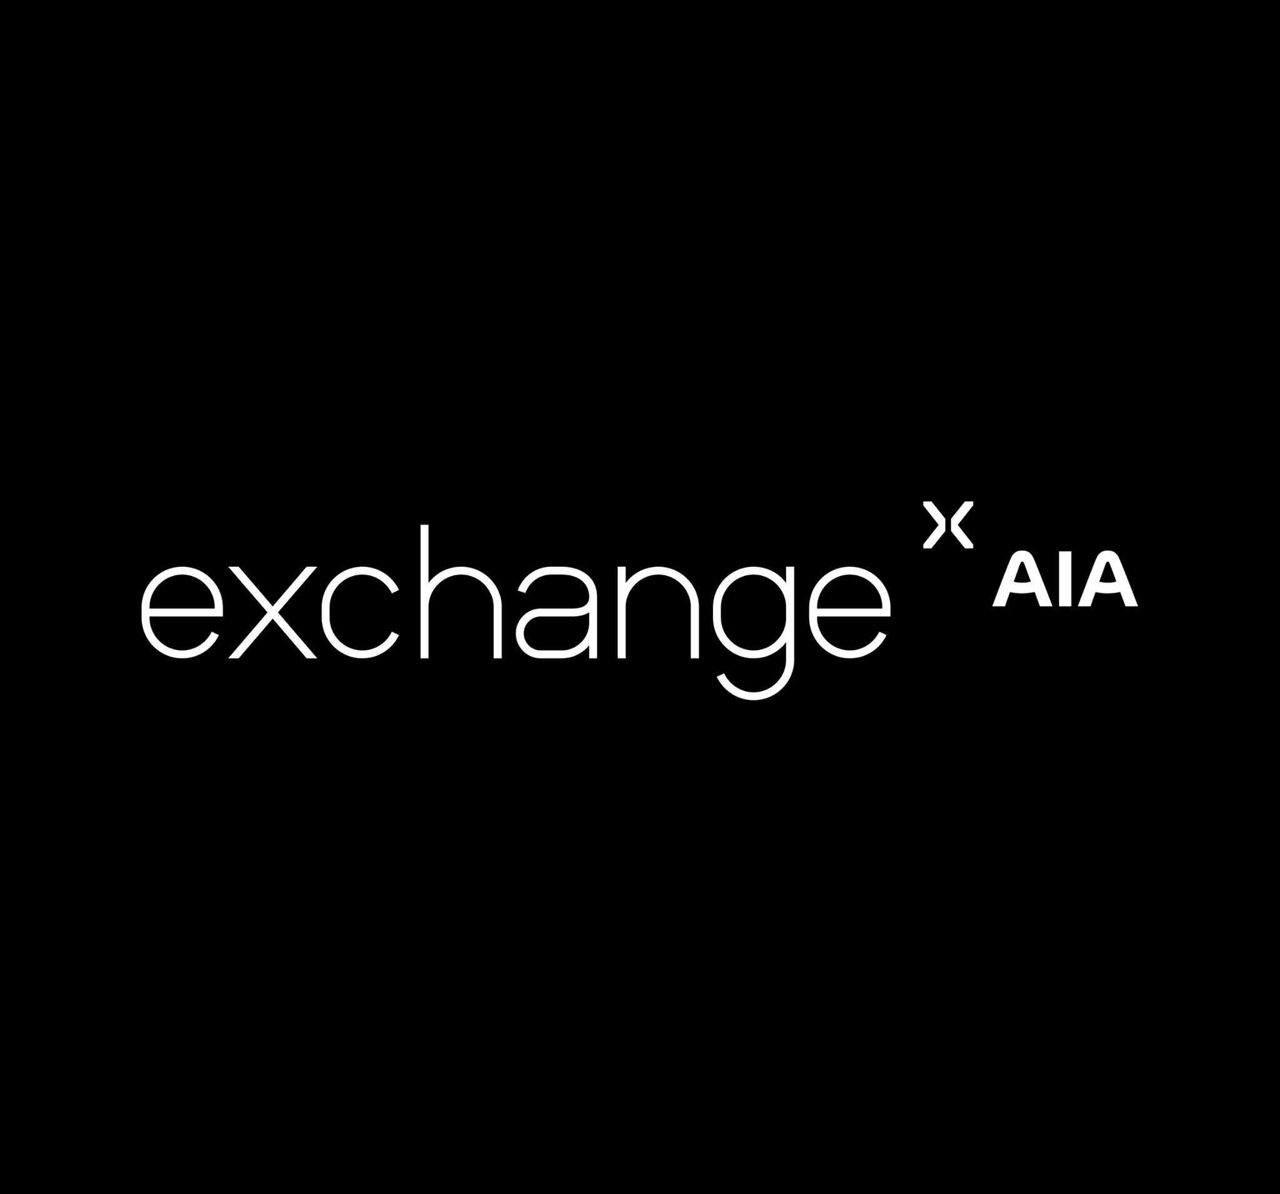 aia-exchange-ho-chi-minh